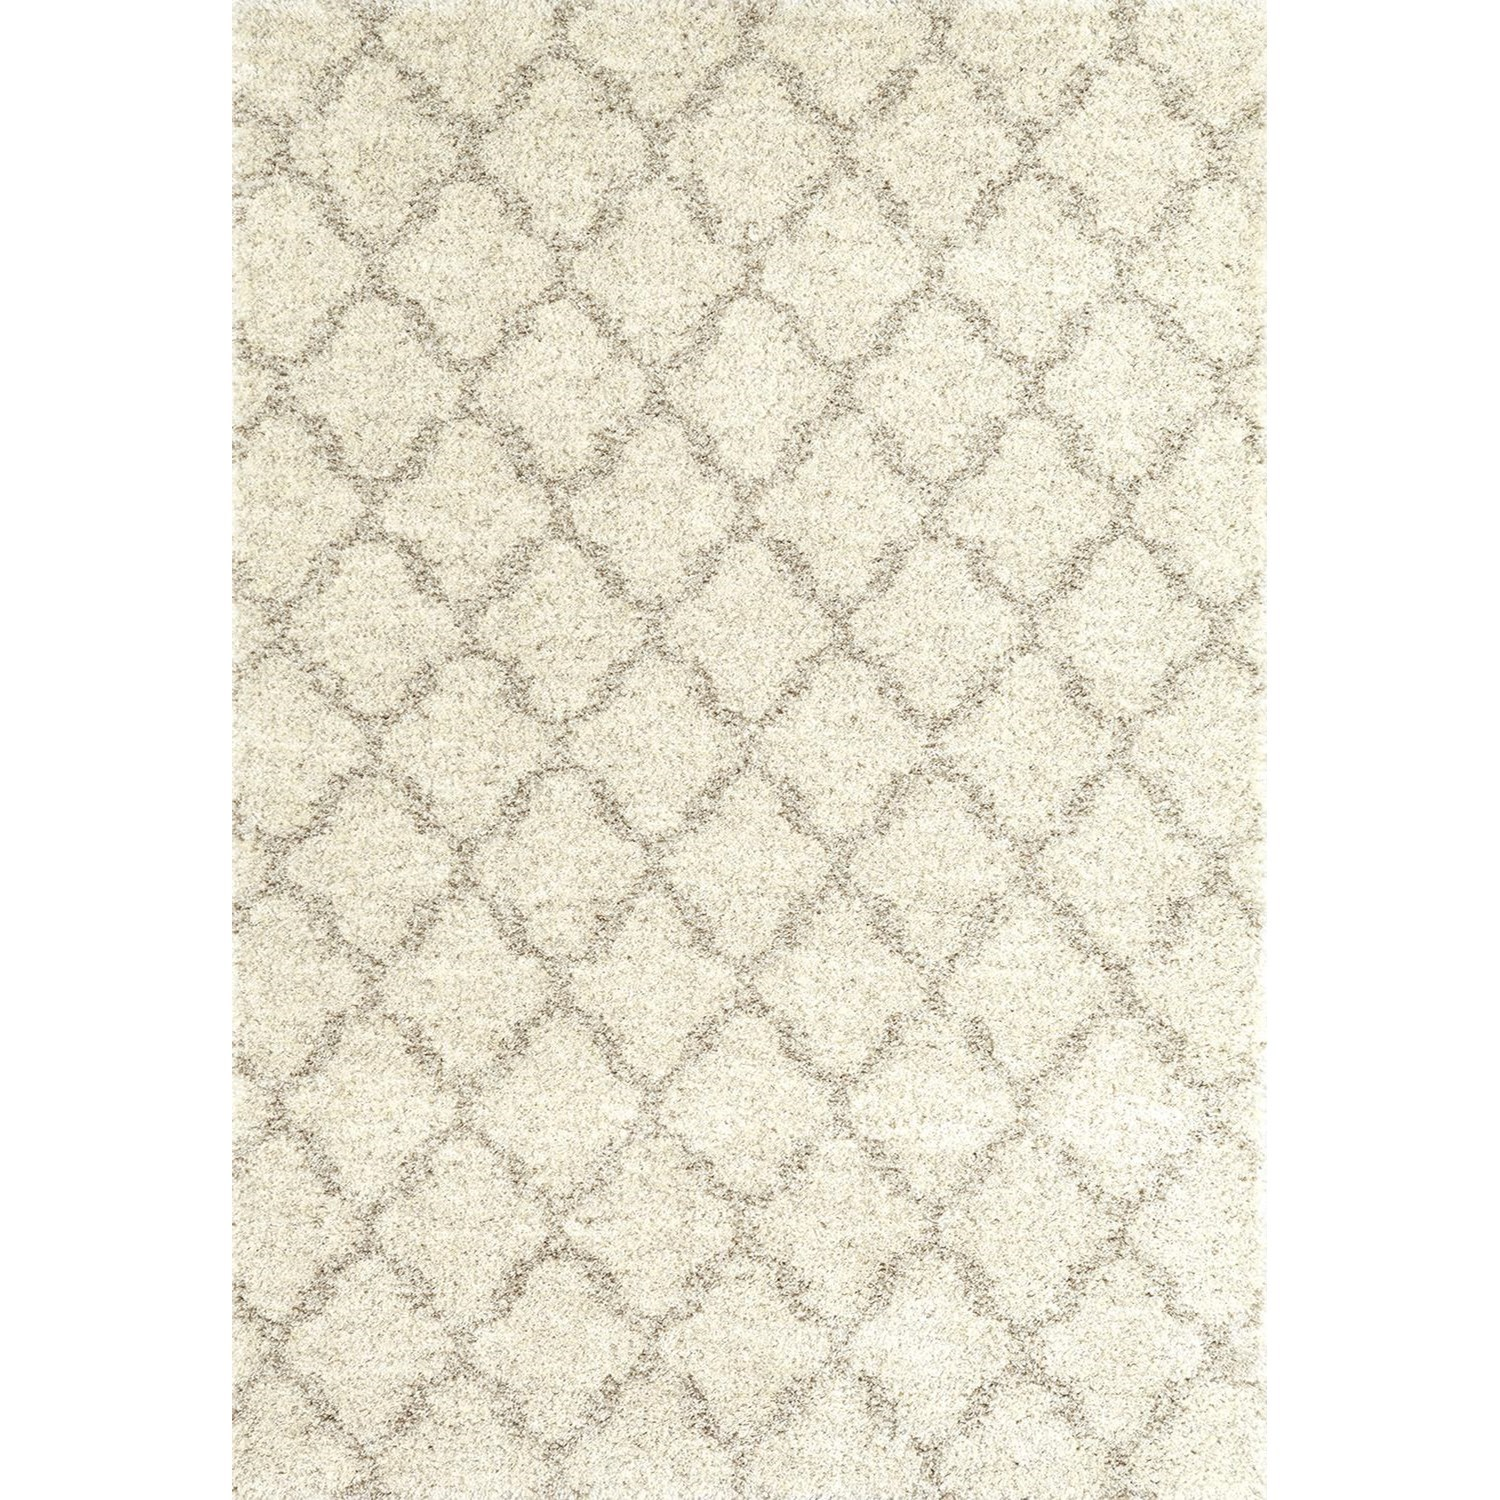 Prima Shag 4'x5'7 Temara Lattice Brown Rug by Karastan Rugs at Darvin Furniture